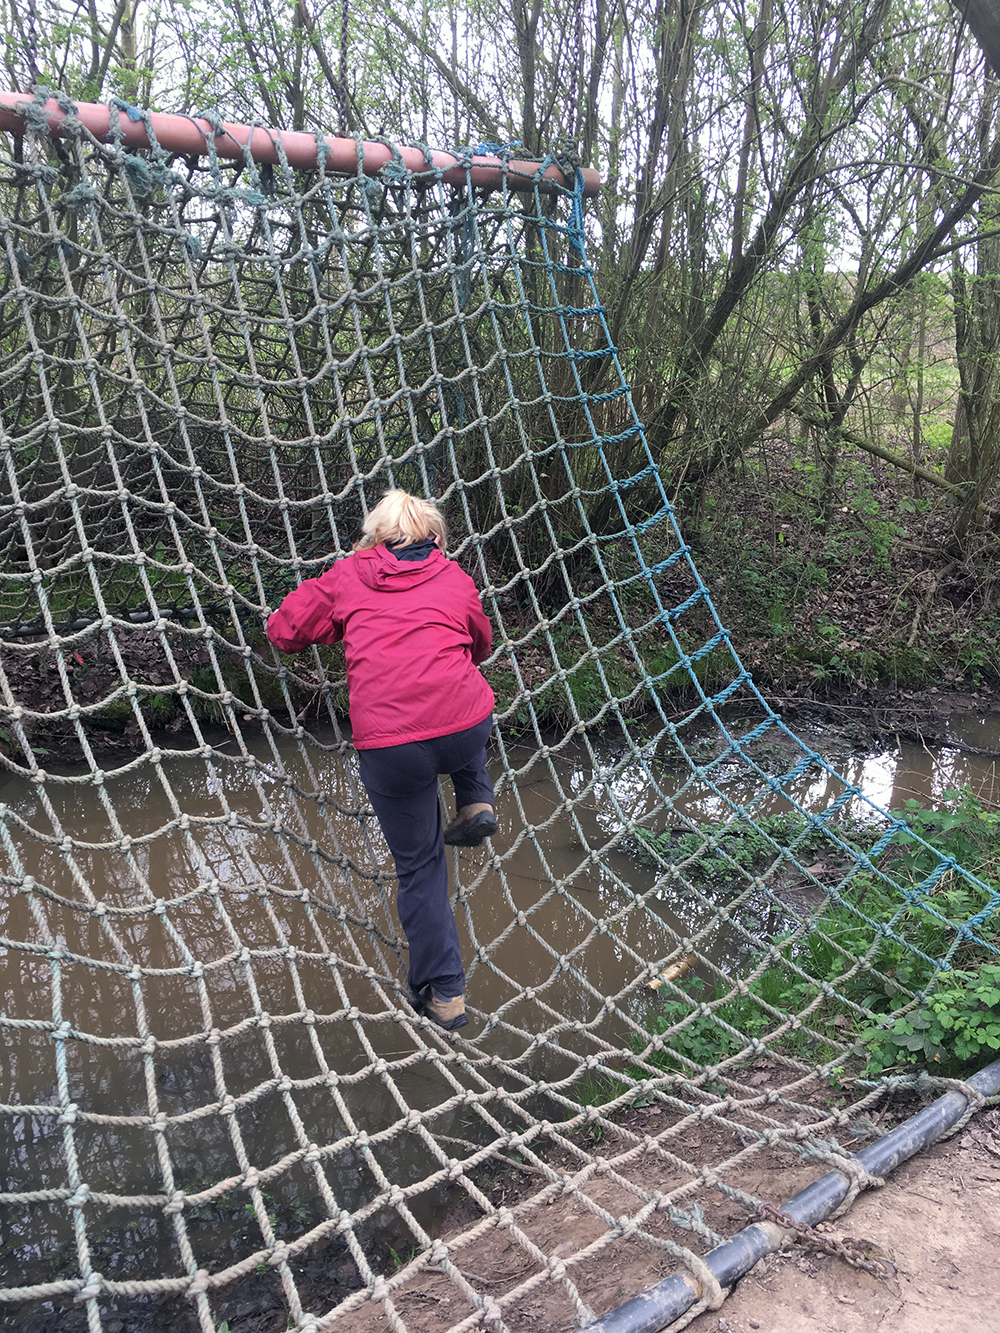 Climbing a net on a Mals day out